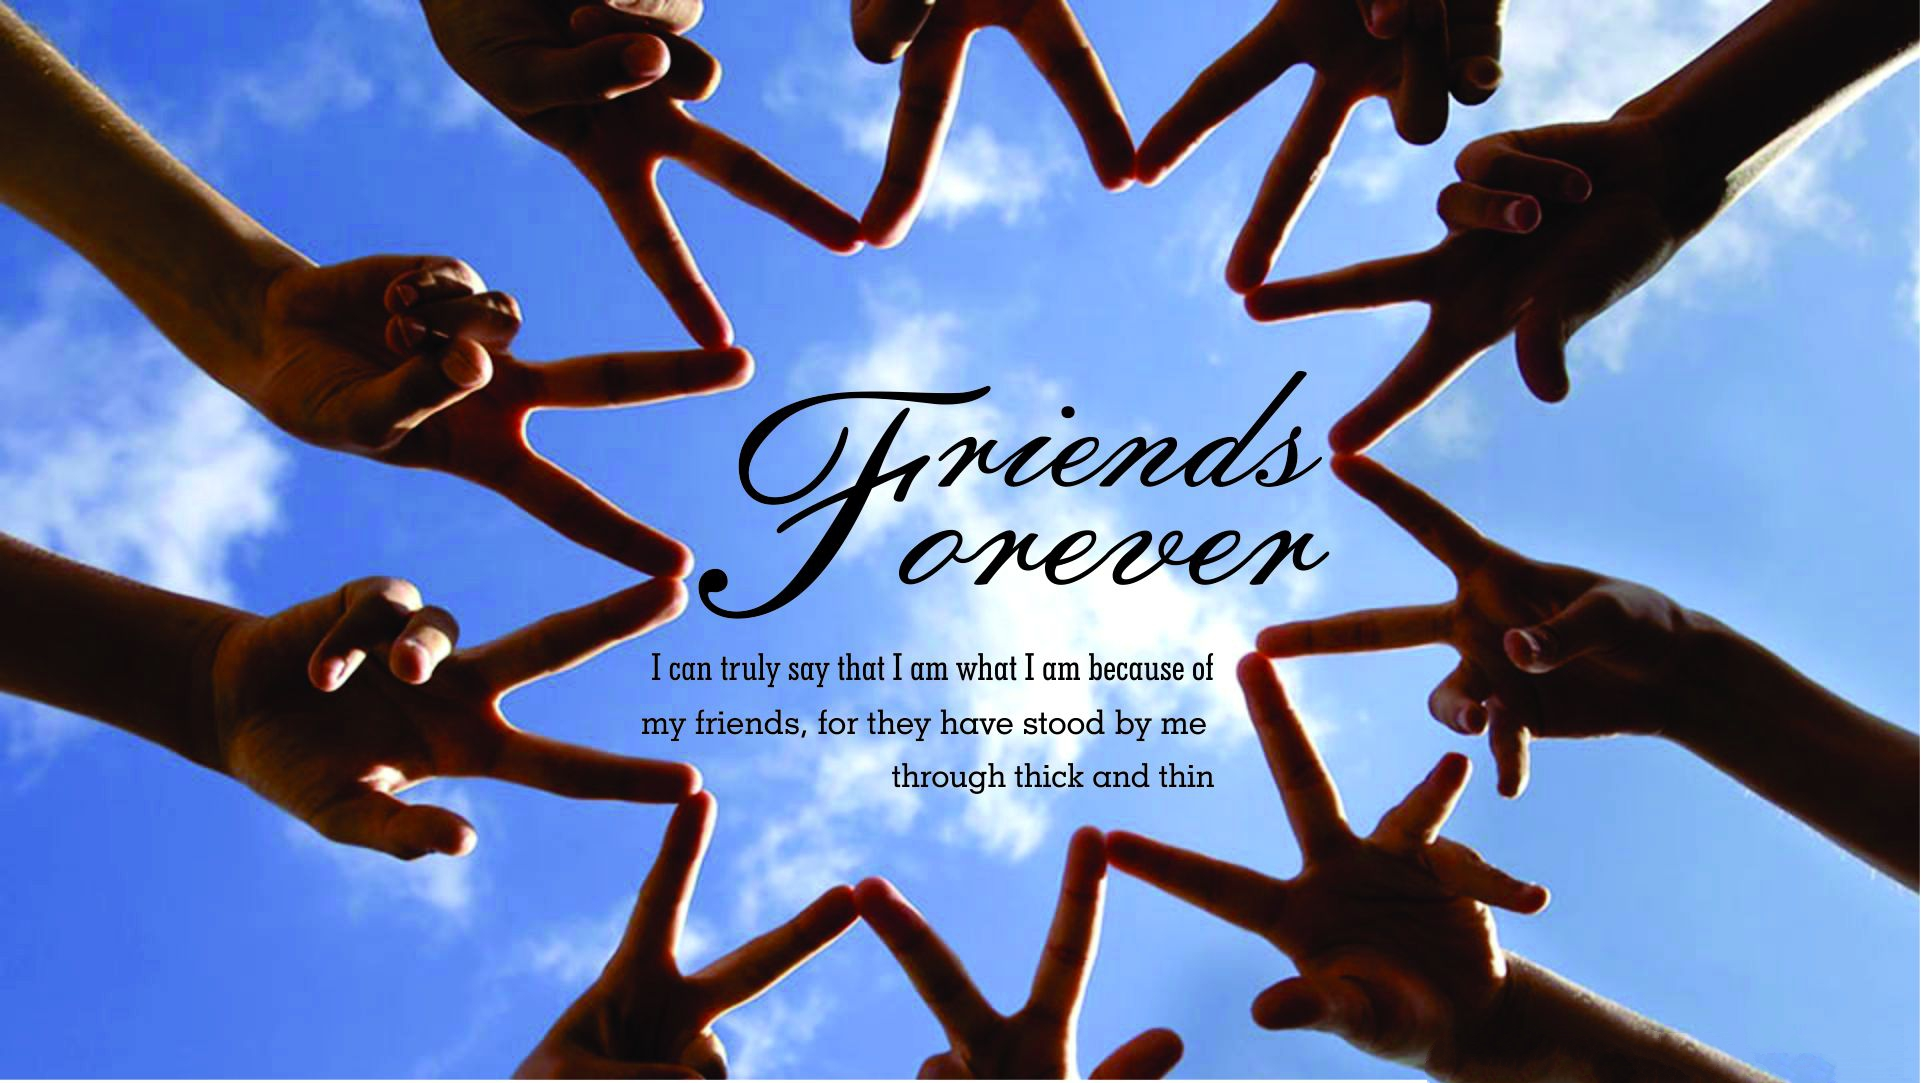 Download Best Friends posted by Zoey Anderson